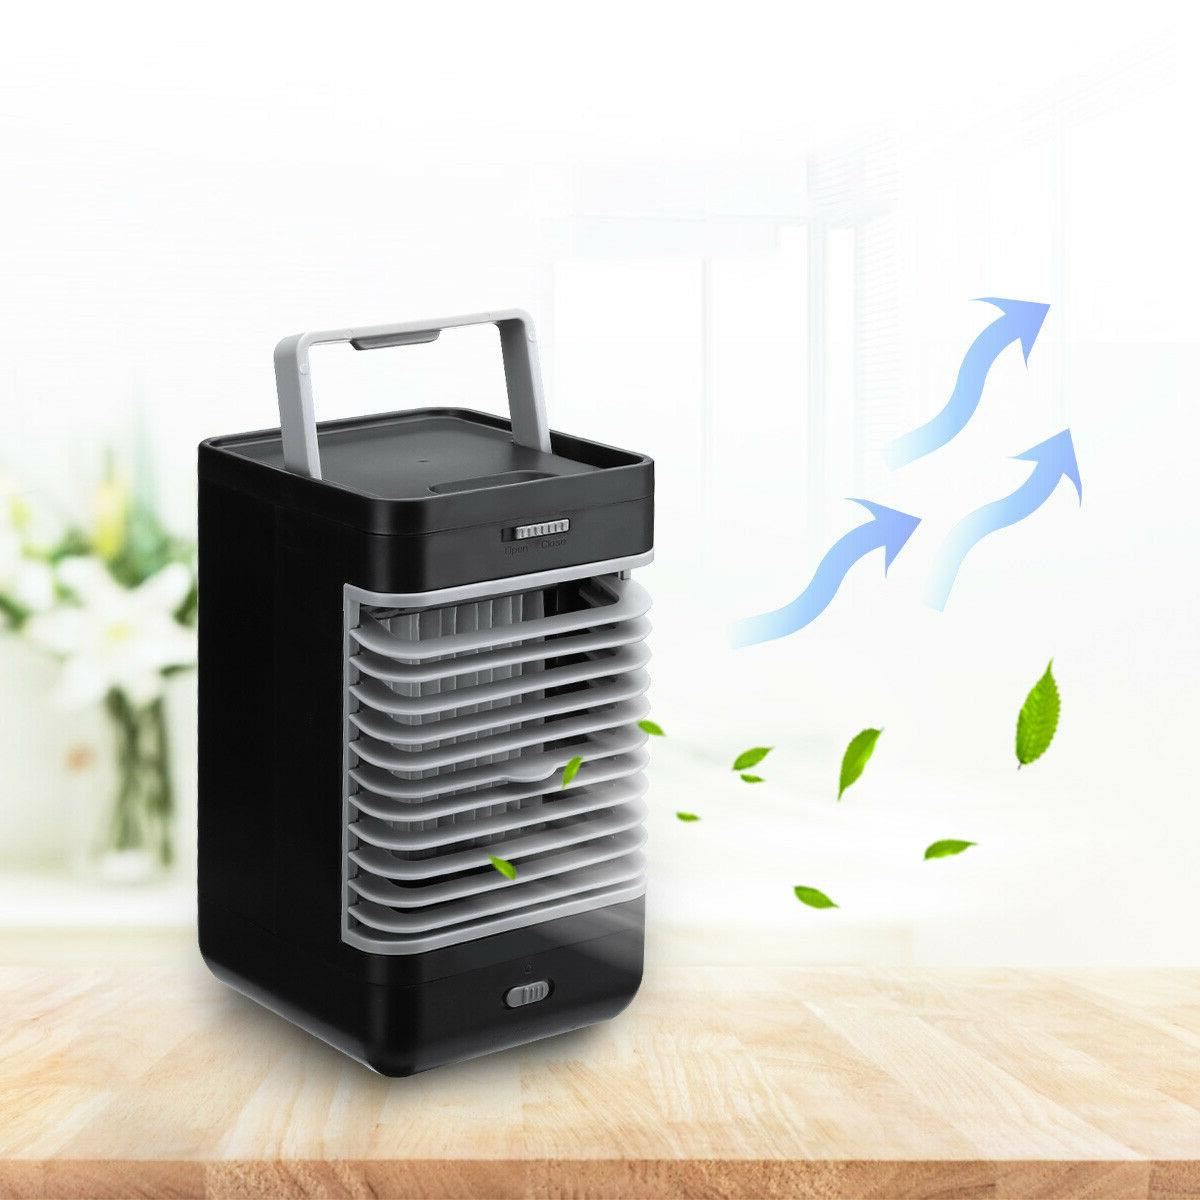 Portable Cooler Space Cooling Artic Humidifier